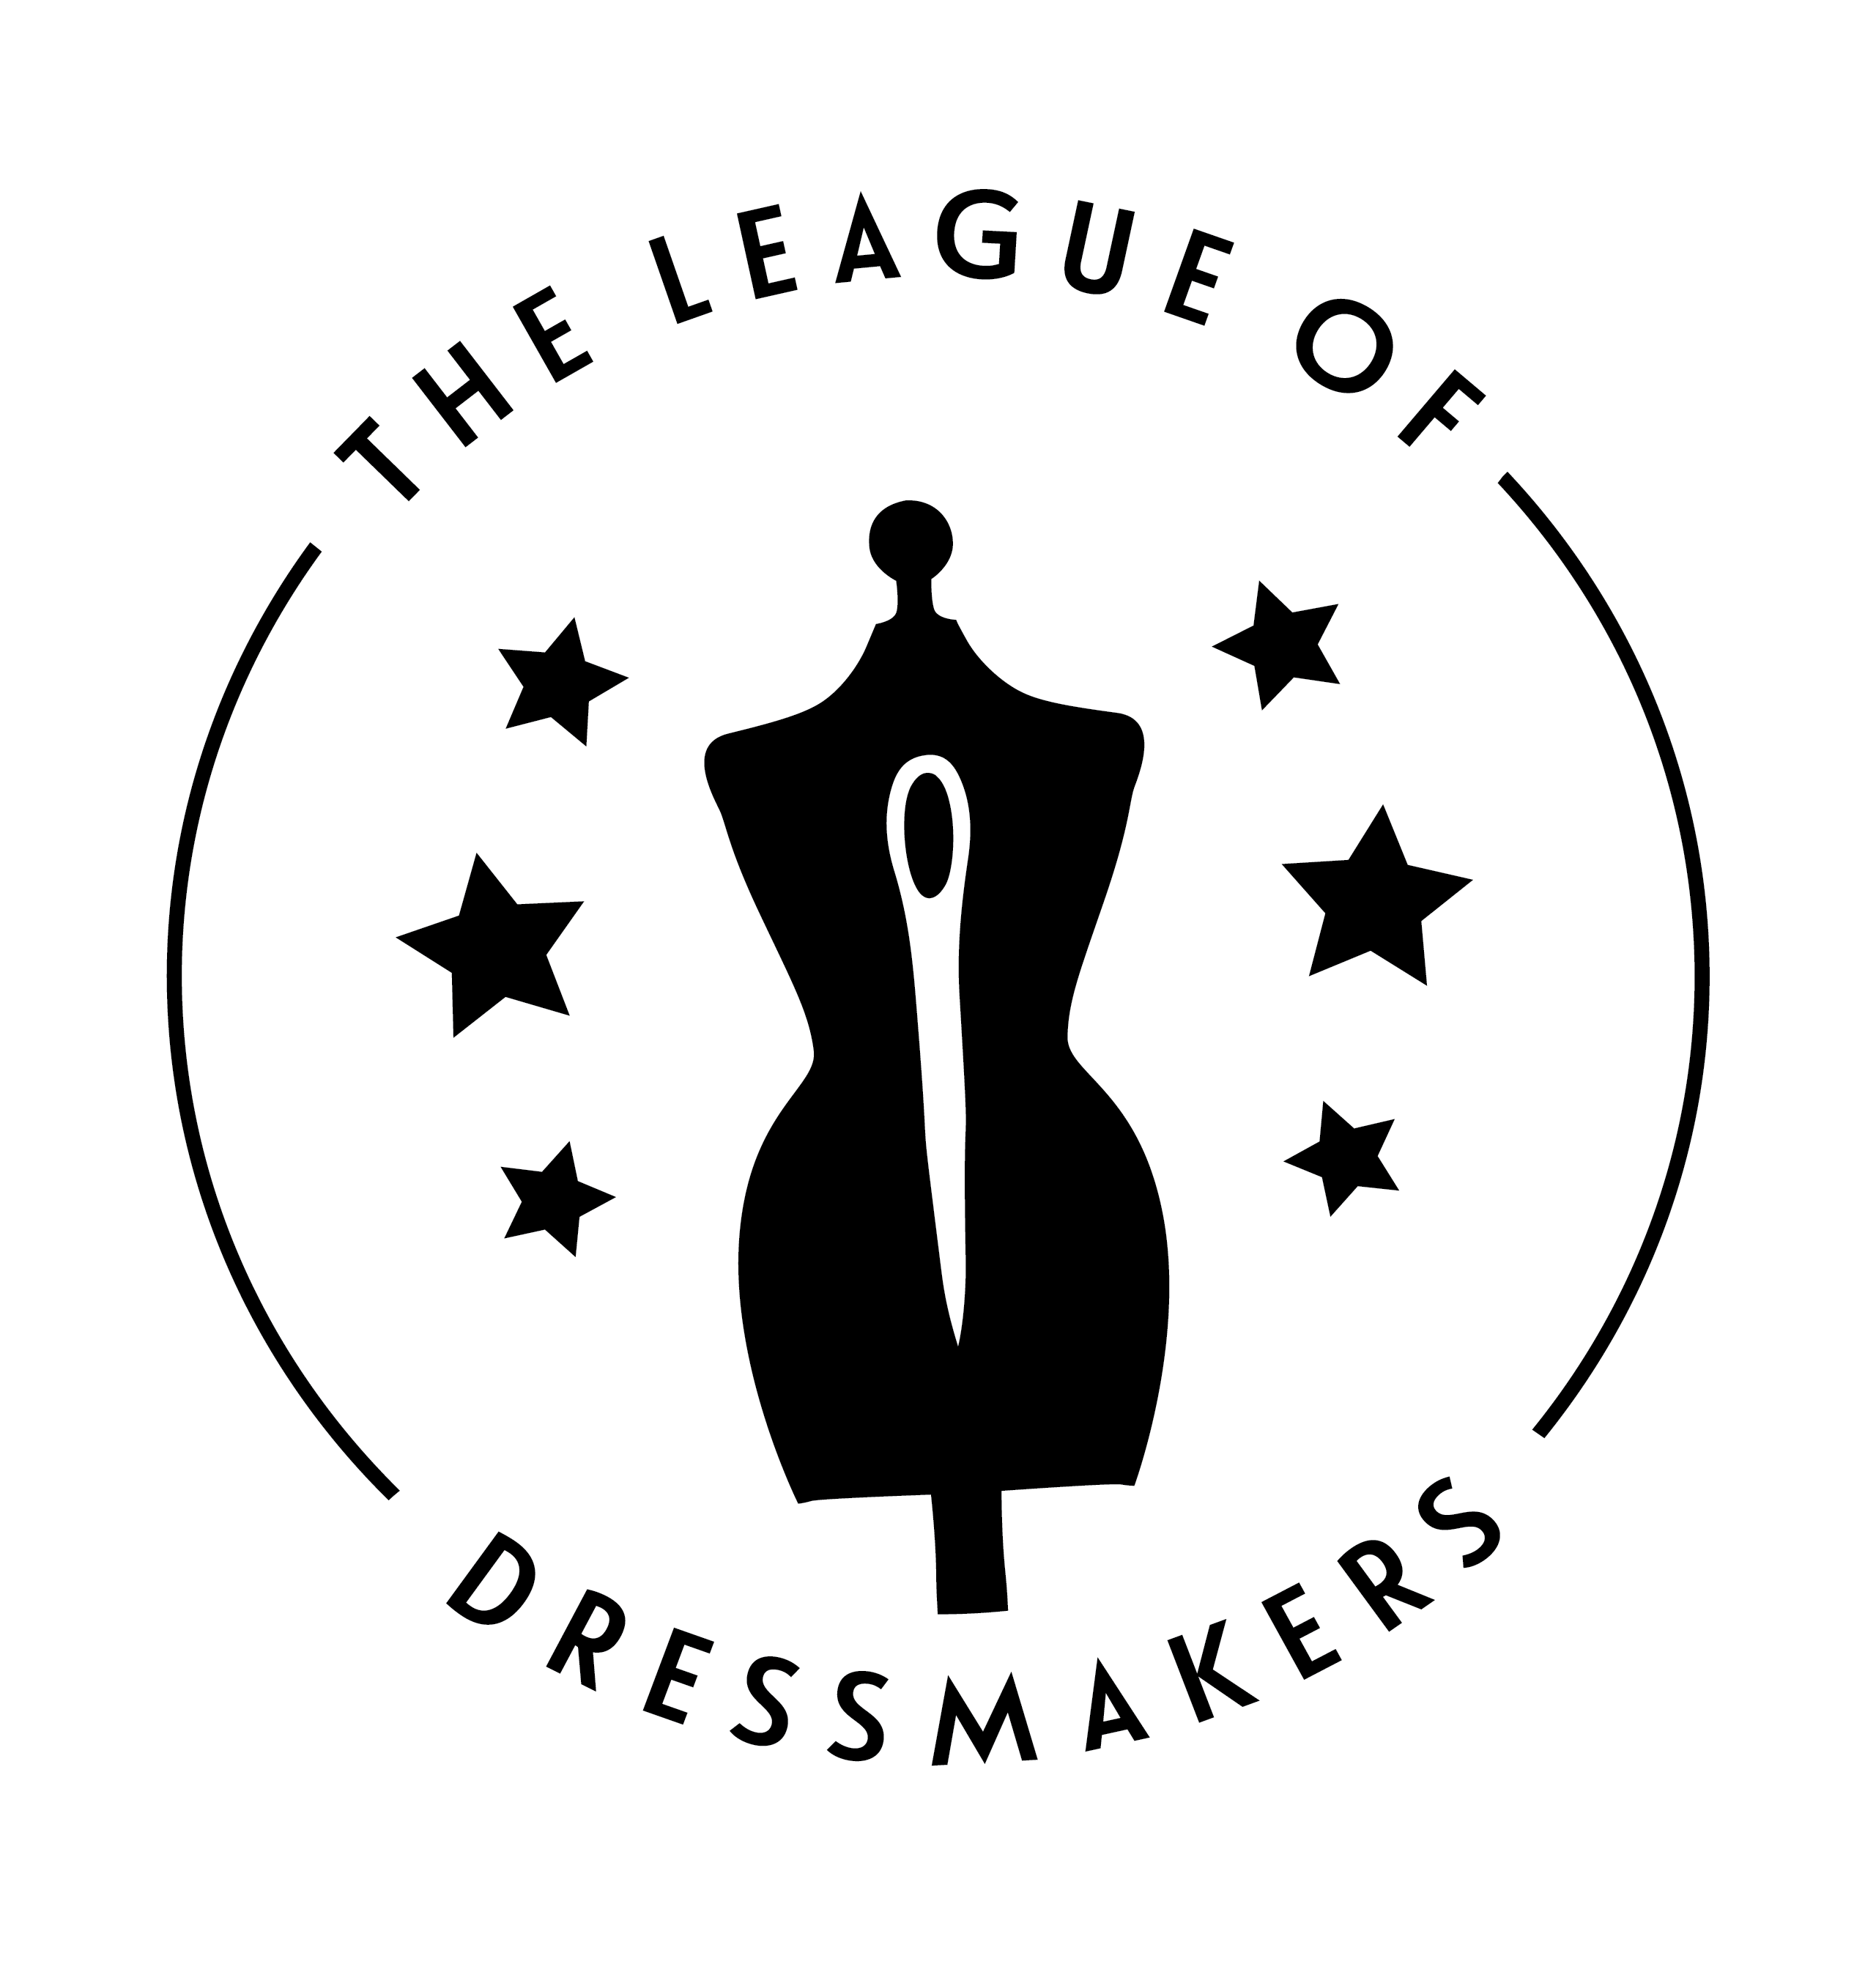 League of Dressmakers